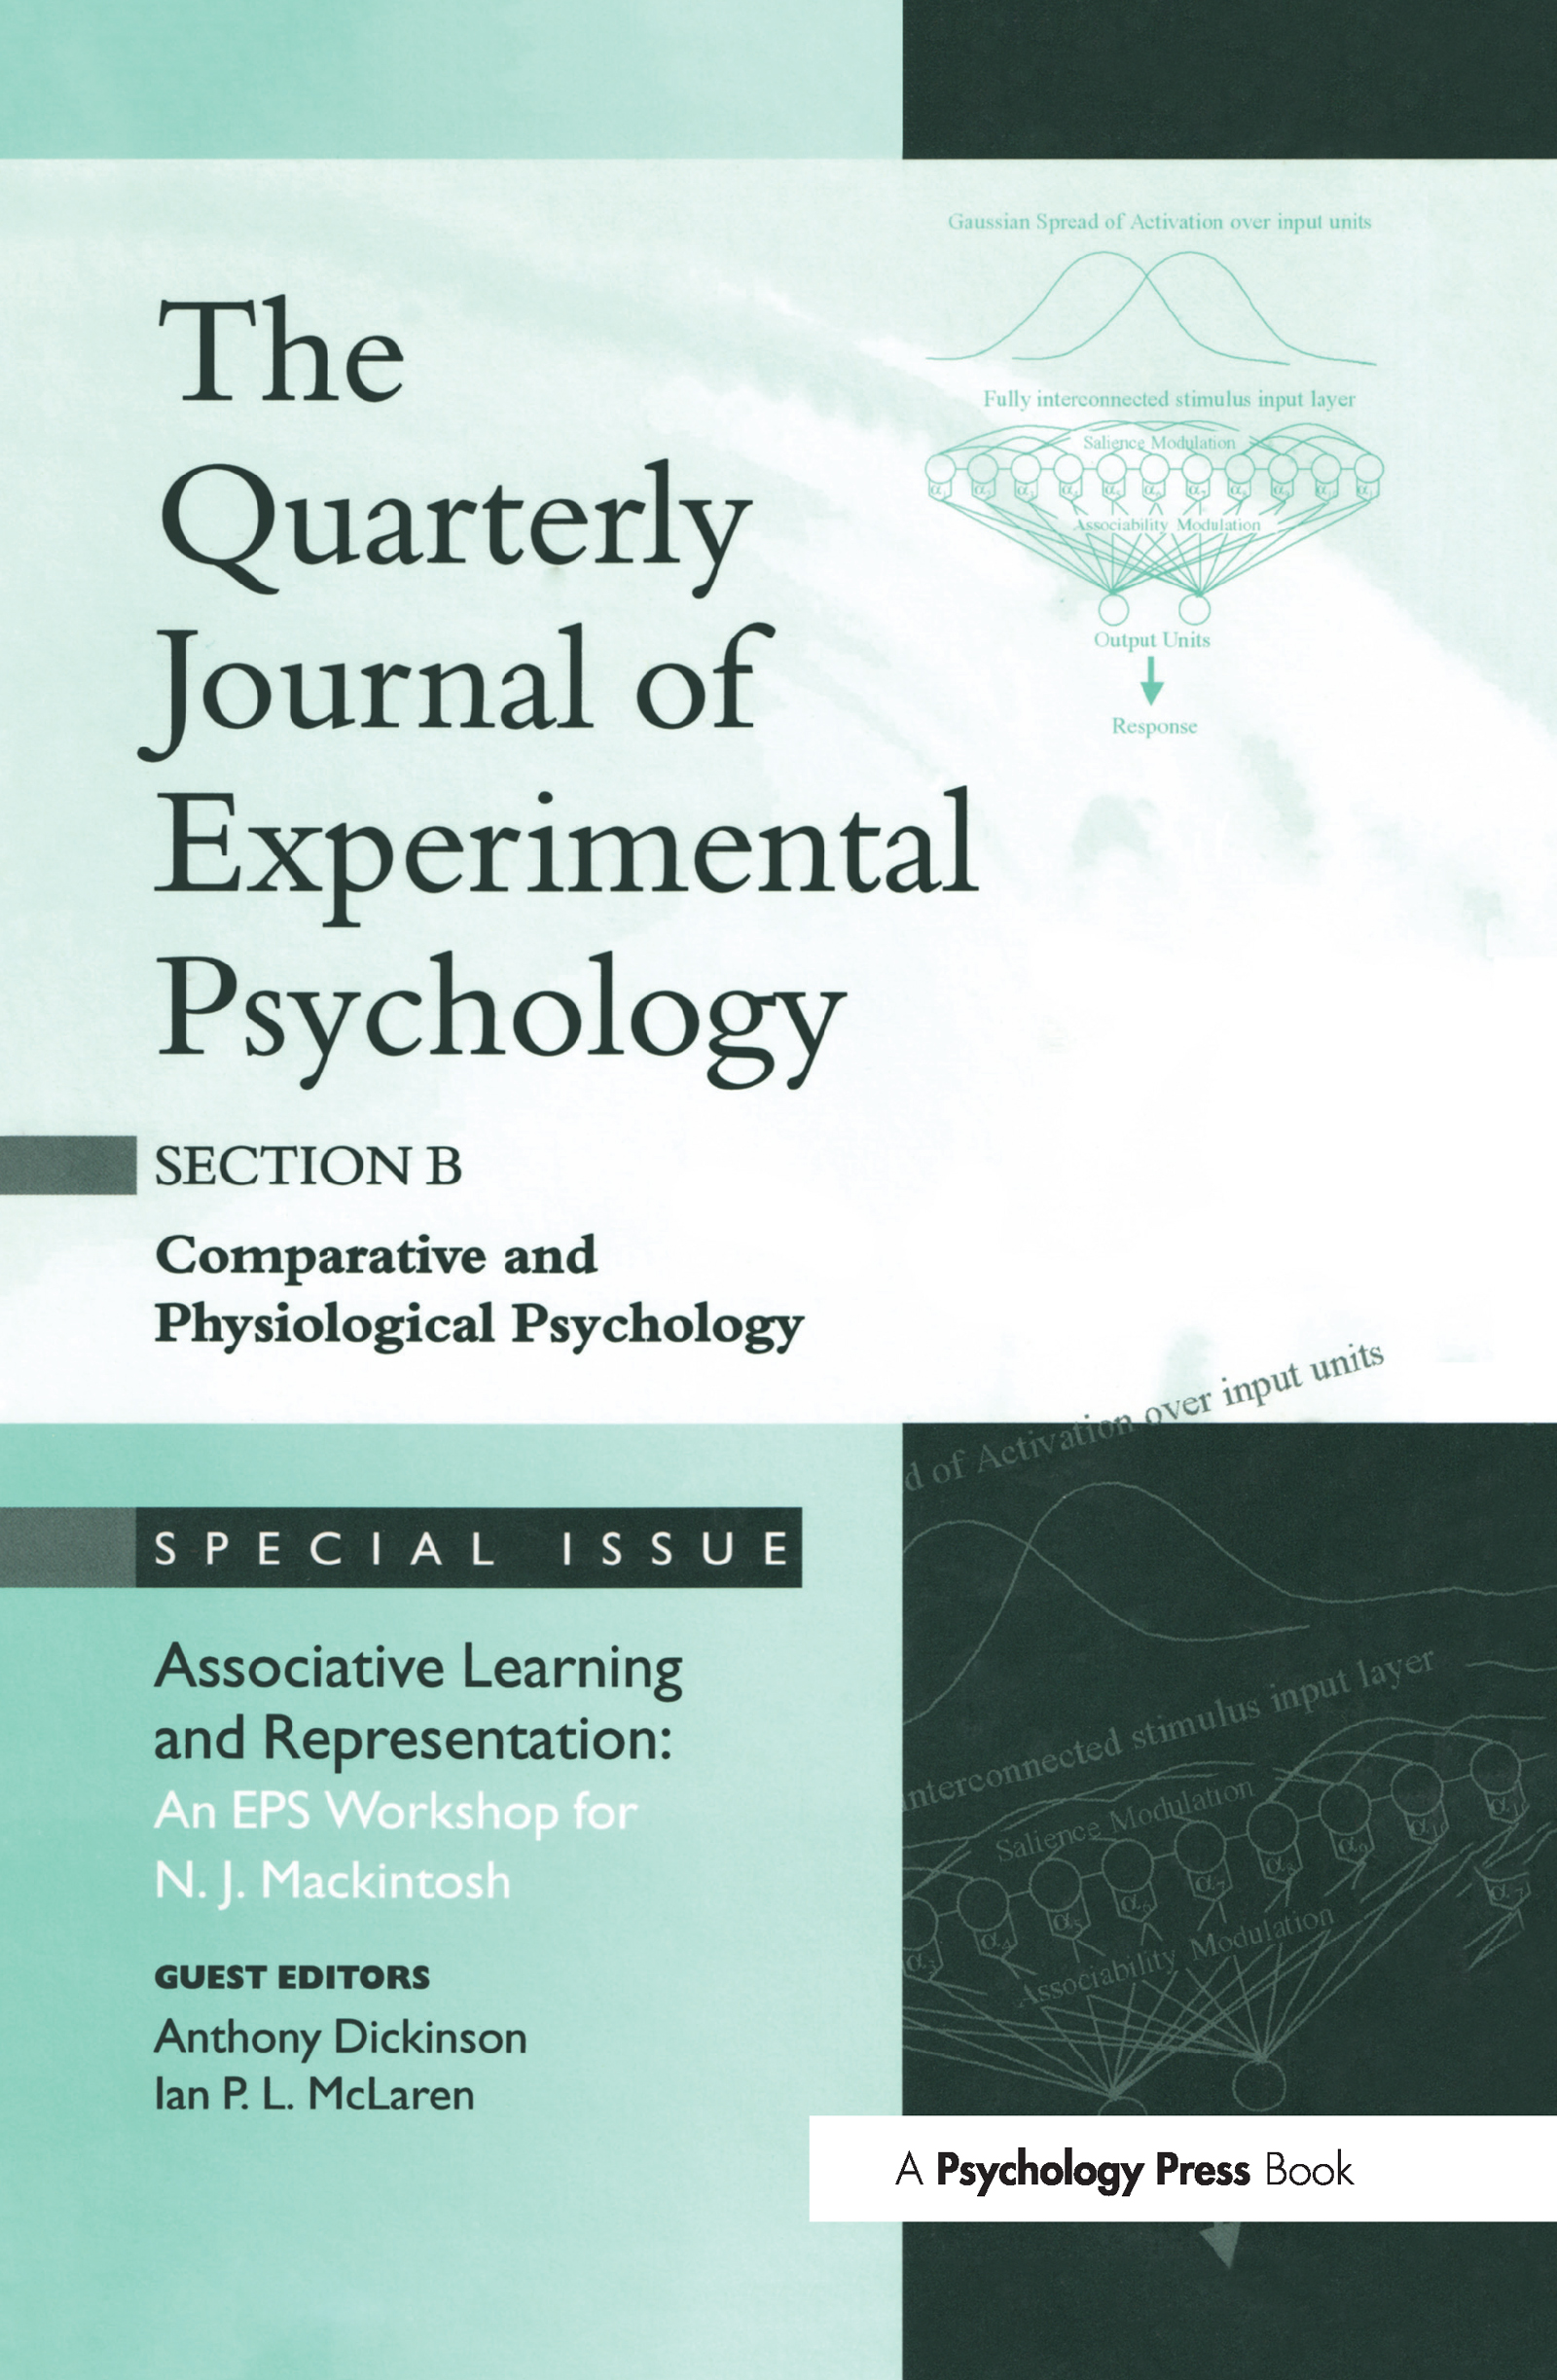 Associative Learning and Representation: An EPS Workshop for N.J. Mackintosh: A Special Issue of the Quarterly Journal of Experimental Psychology, Section B book cover